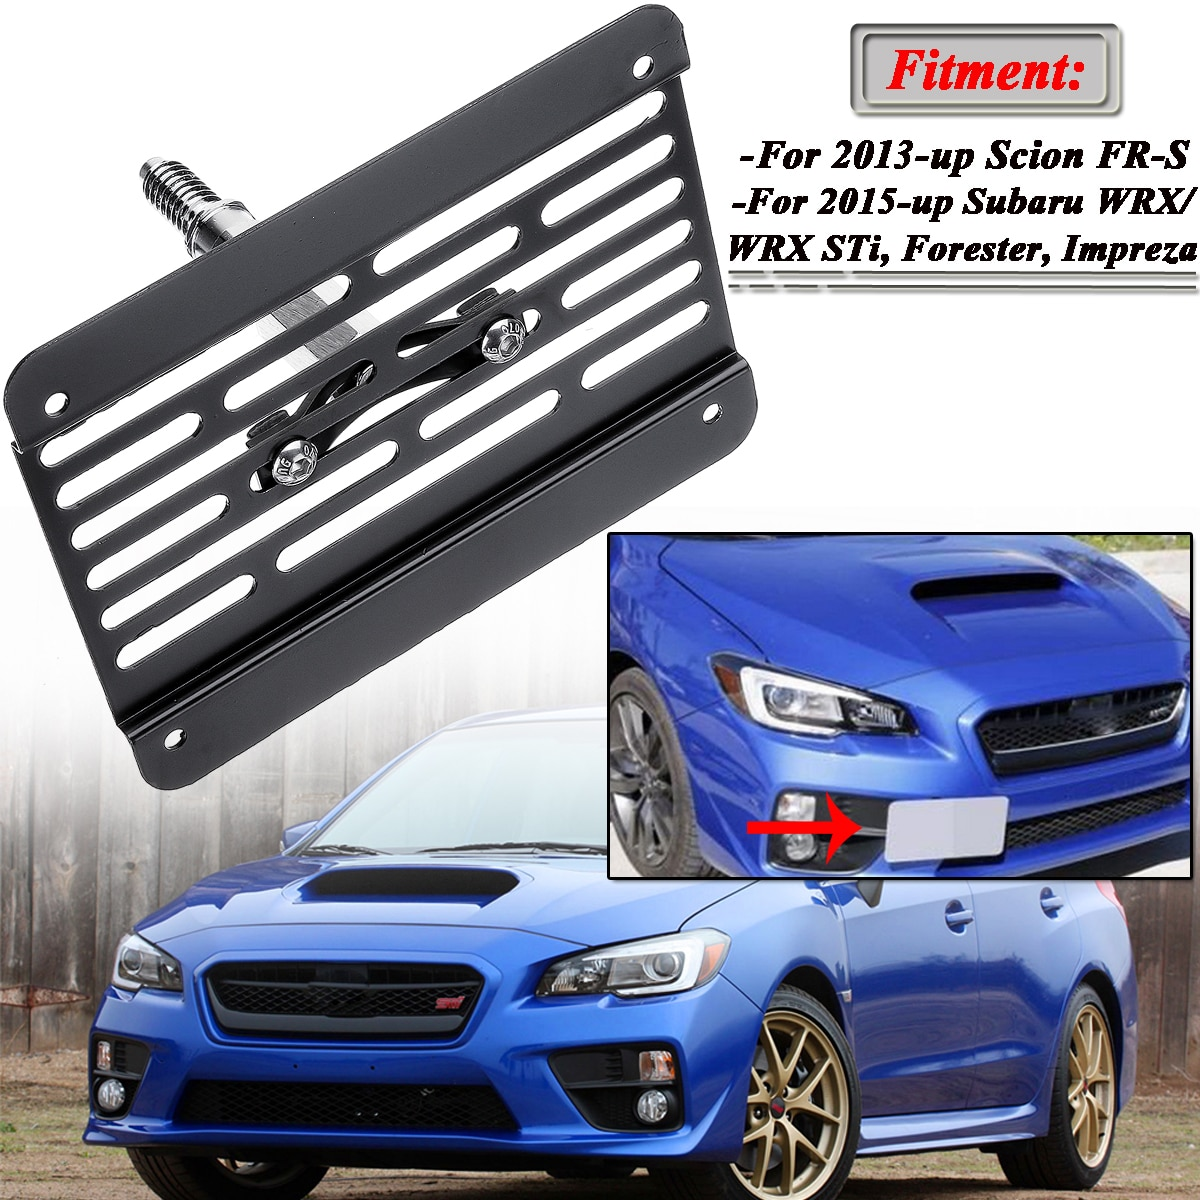 New Front Bumper Tow Hook License Plate Frame Holder Relocator Mounting Bracket For Subaru Wrx Sti 2015 Up Scion Fr S 2013 Up Leather Bag